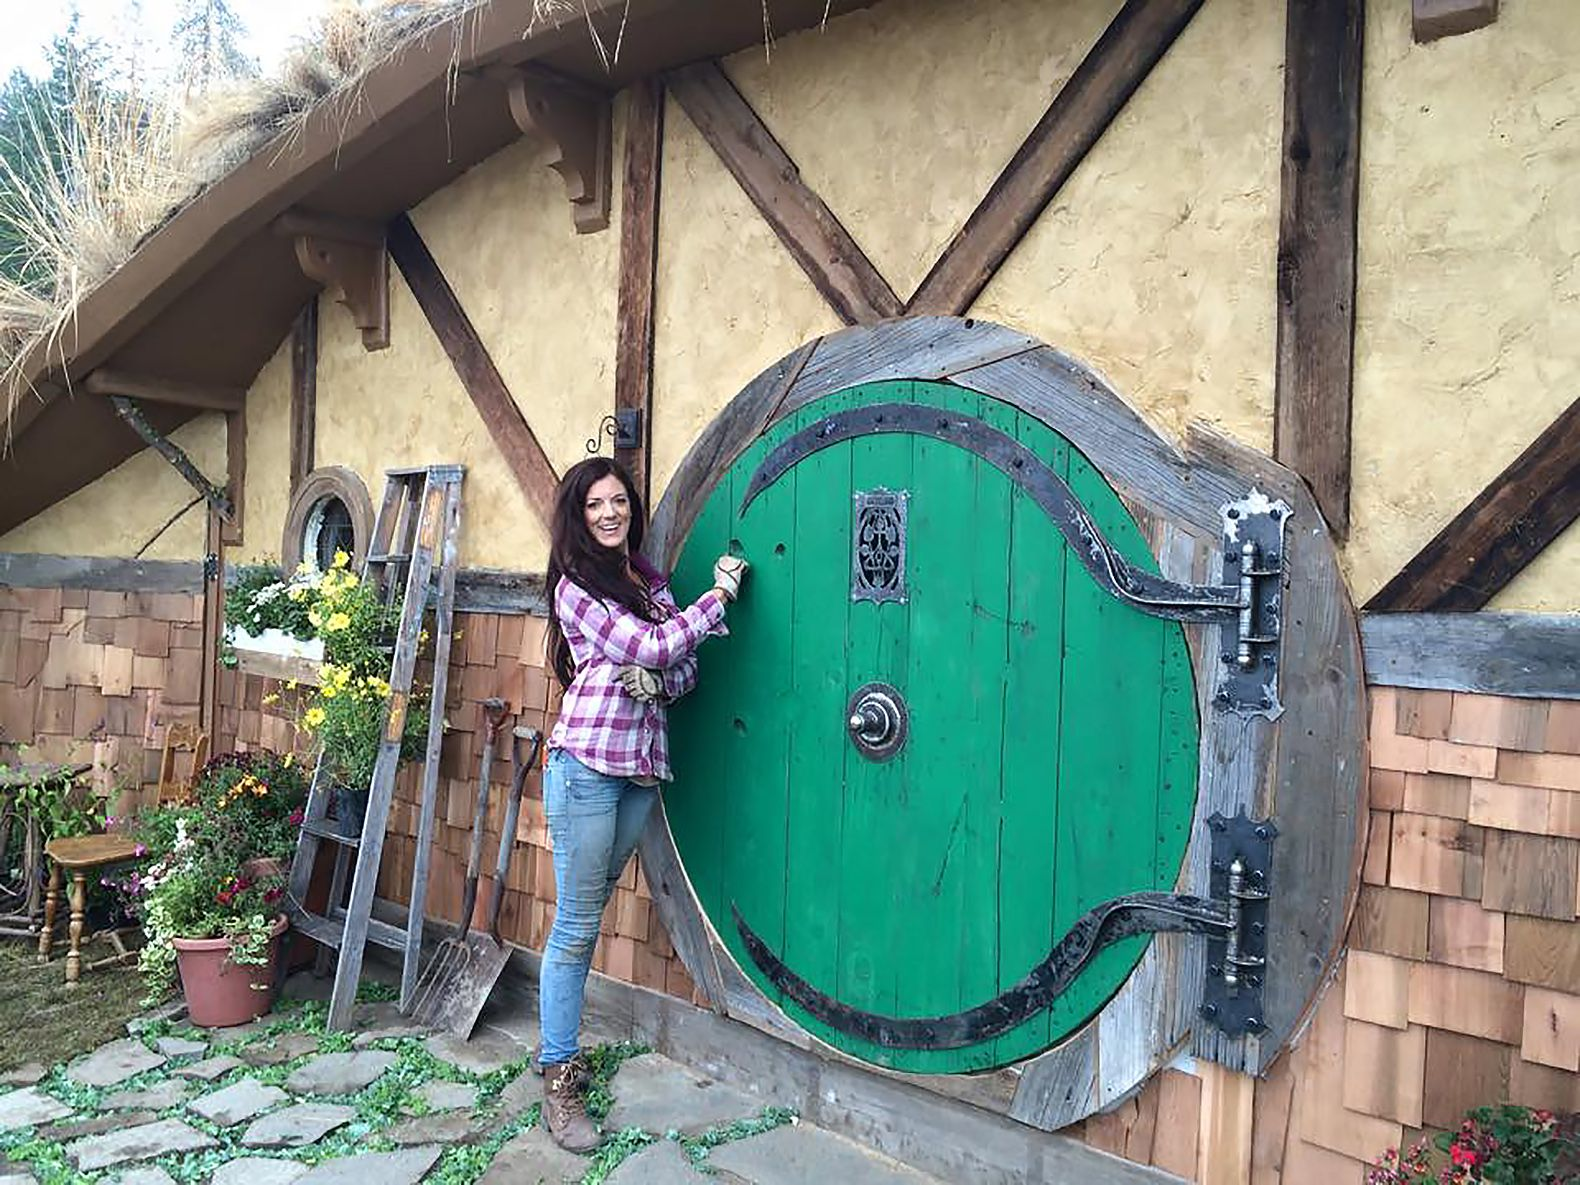 Washington Hobbit Hole is the first of three in an off-grid Shire